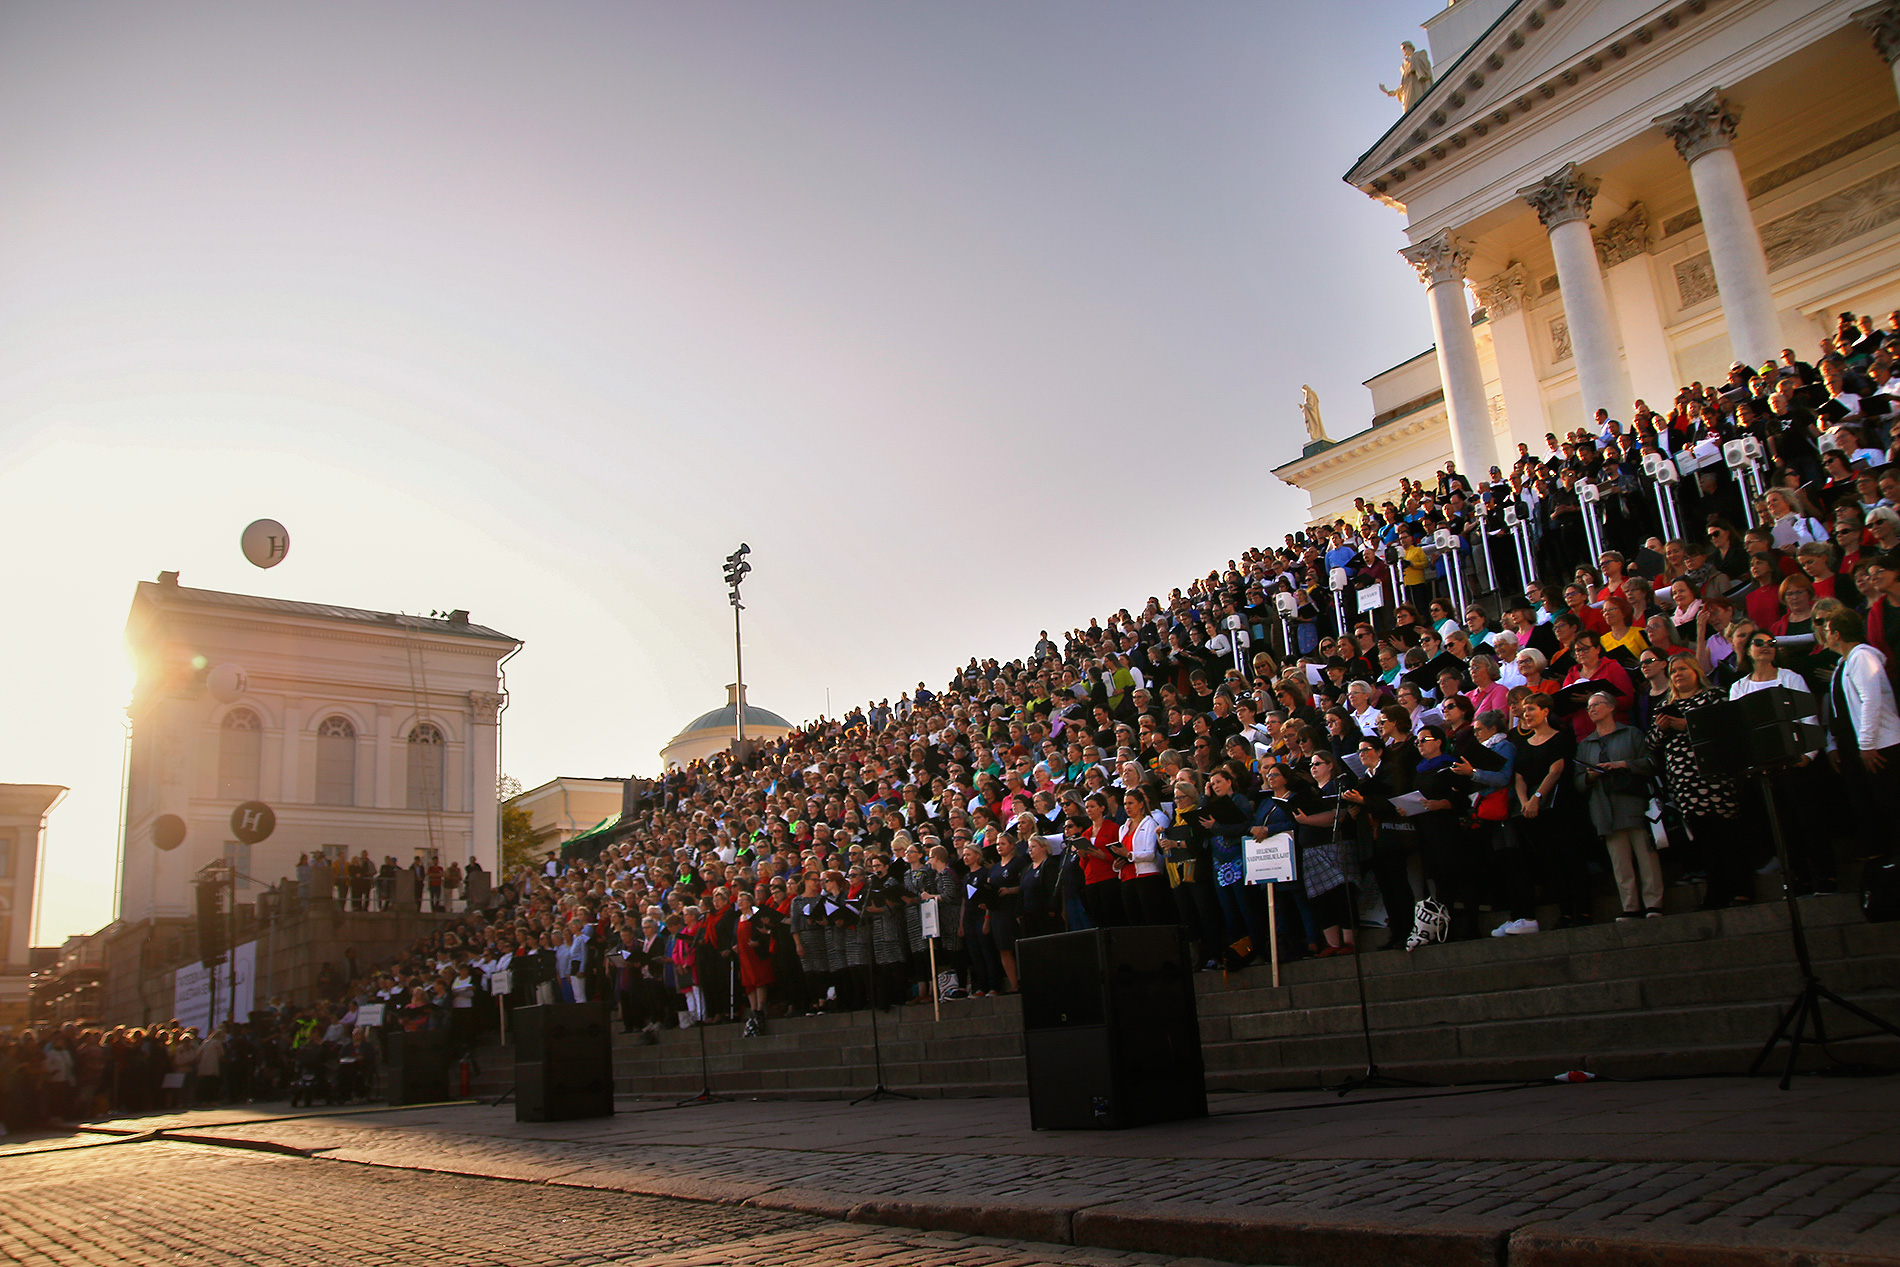 The Tour of Choirs gathered over 2,520 singers at the steps of Helsinki Cathedral. After the concert, the choirs spread out to the city to sing in the festival restaurants. Picture: Tony Öhberg for Finland Today